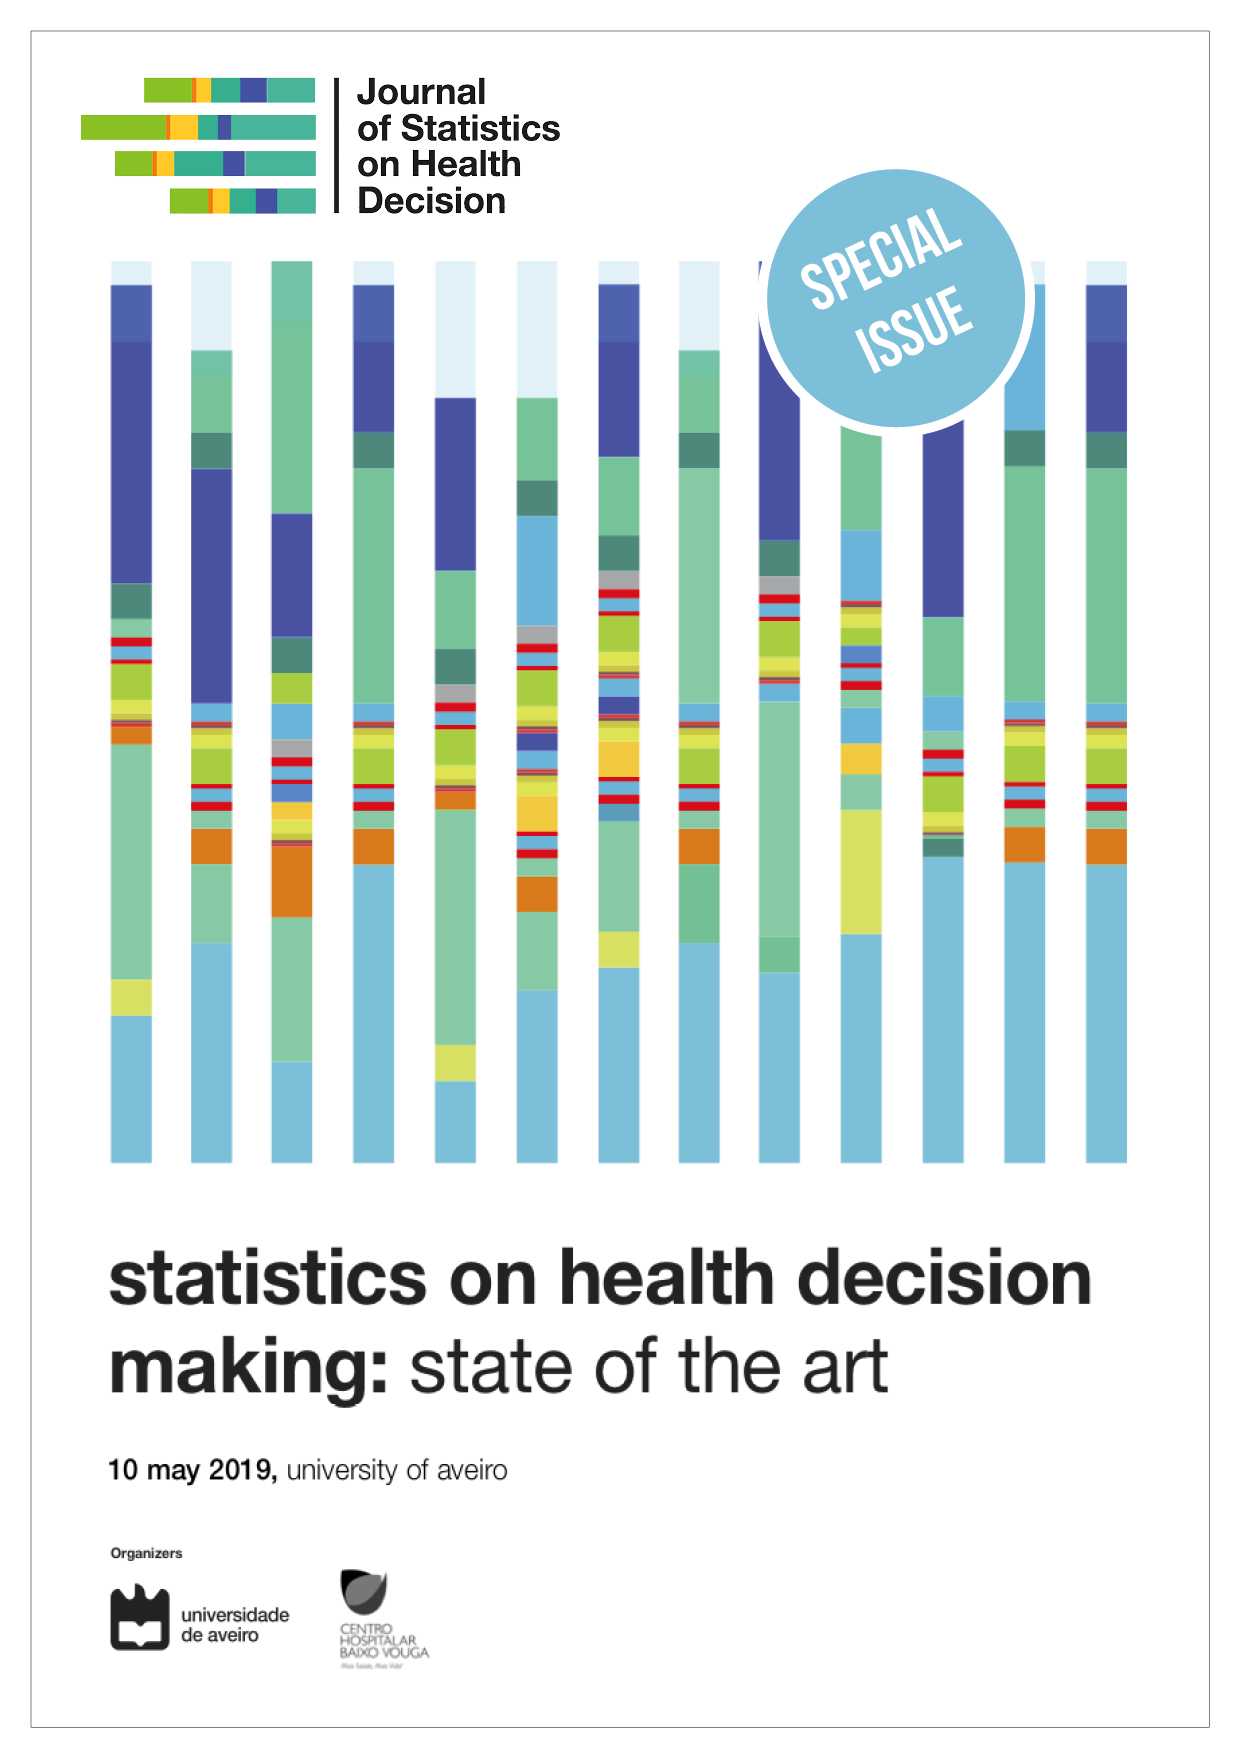 JSHD - Special Issue - Statistics on Health Decision Making: state of the art